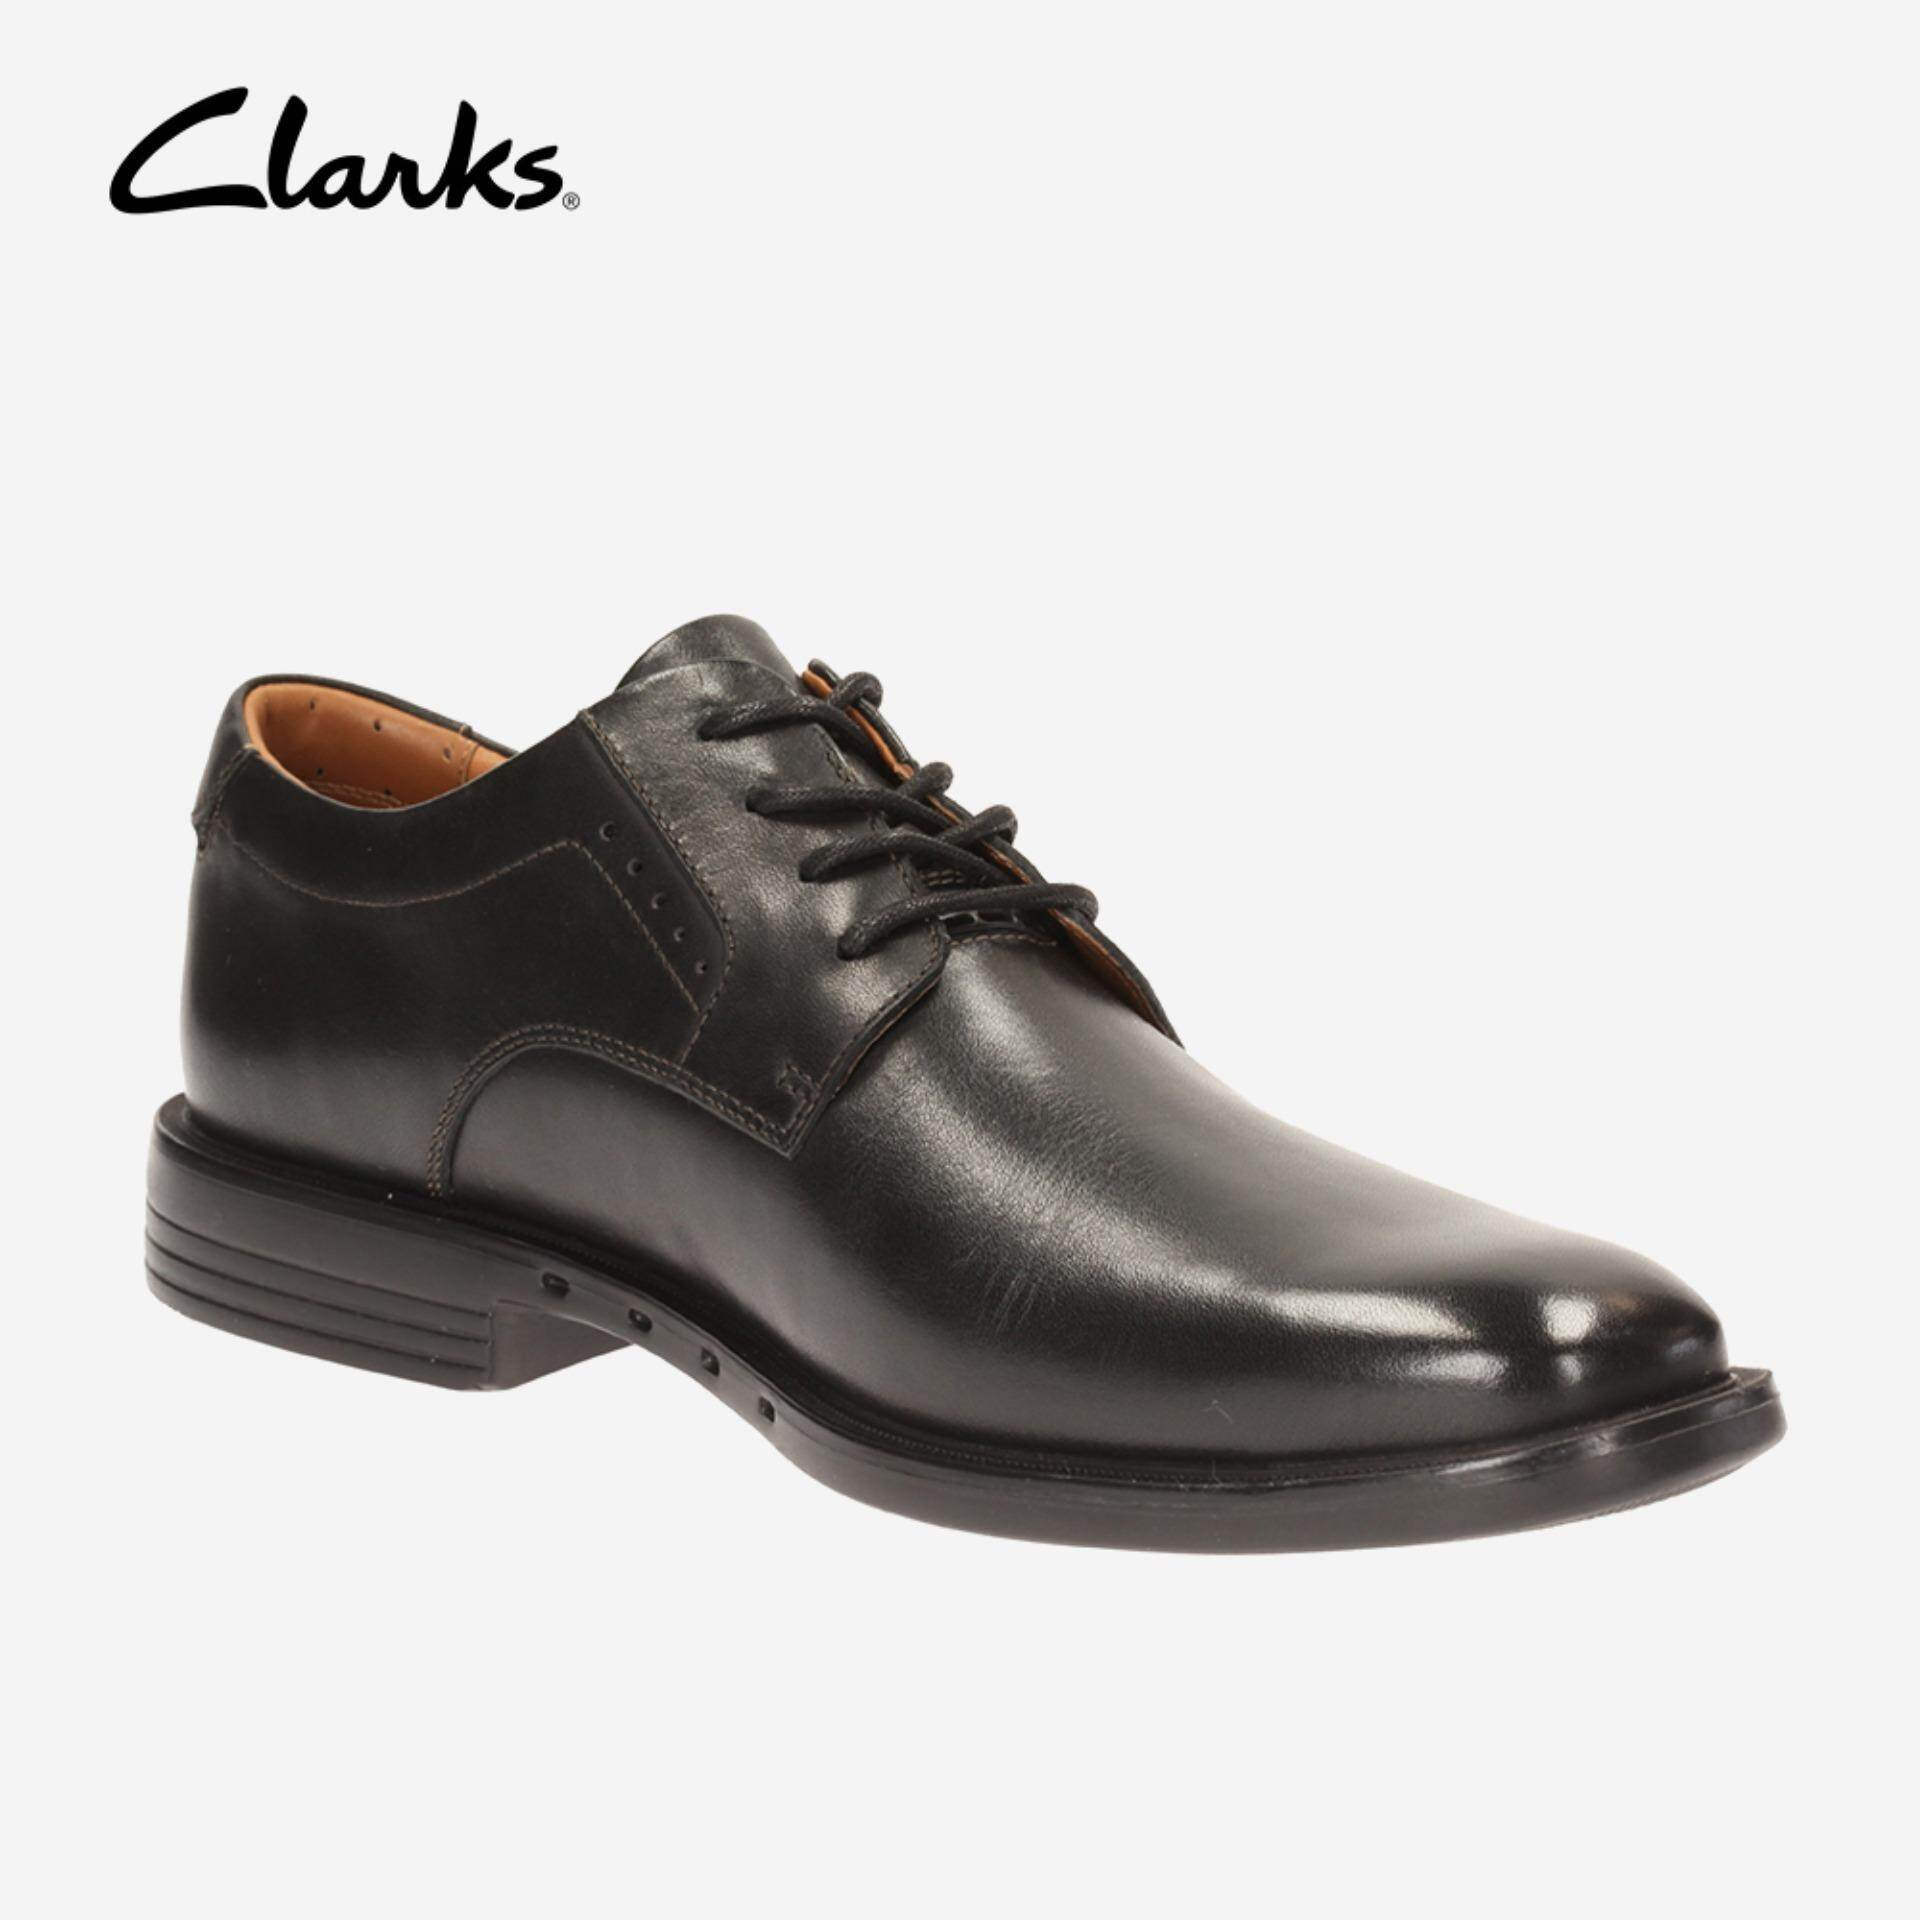 Clarks Mens Shoes Price In Malaysia Best Clarks Mens Shoes Lazada